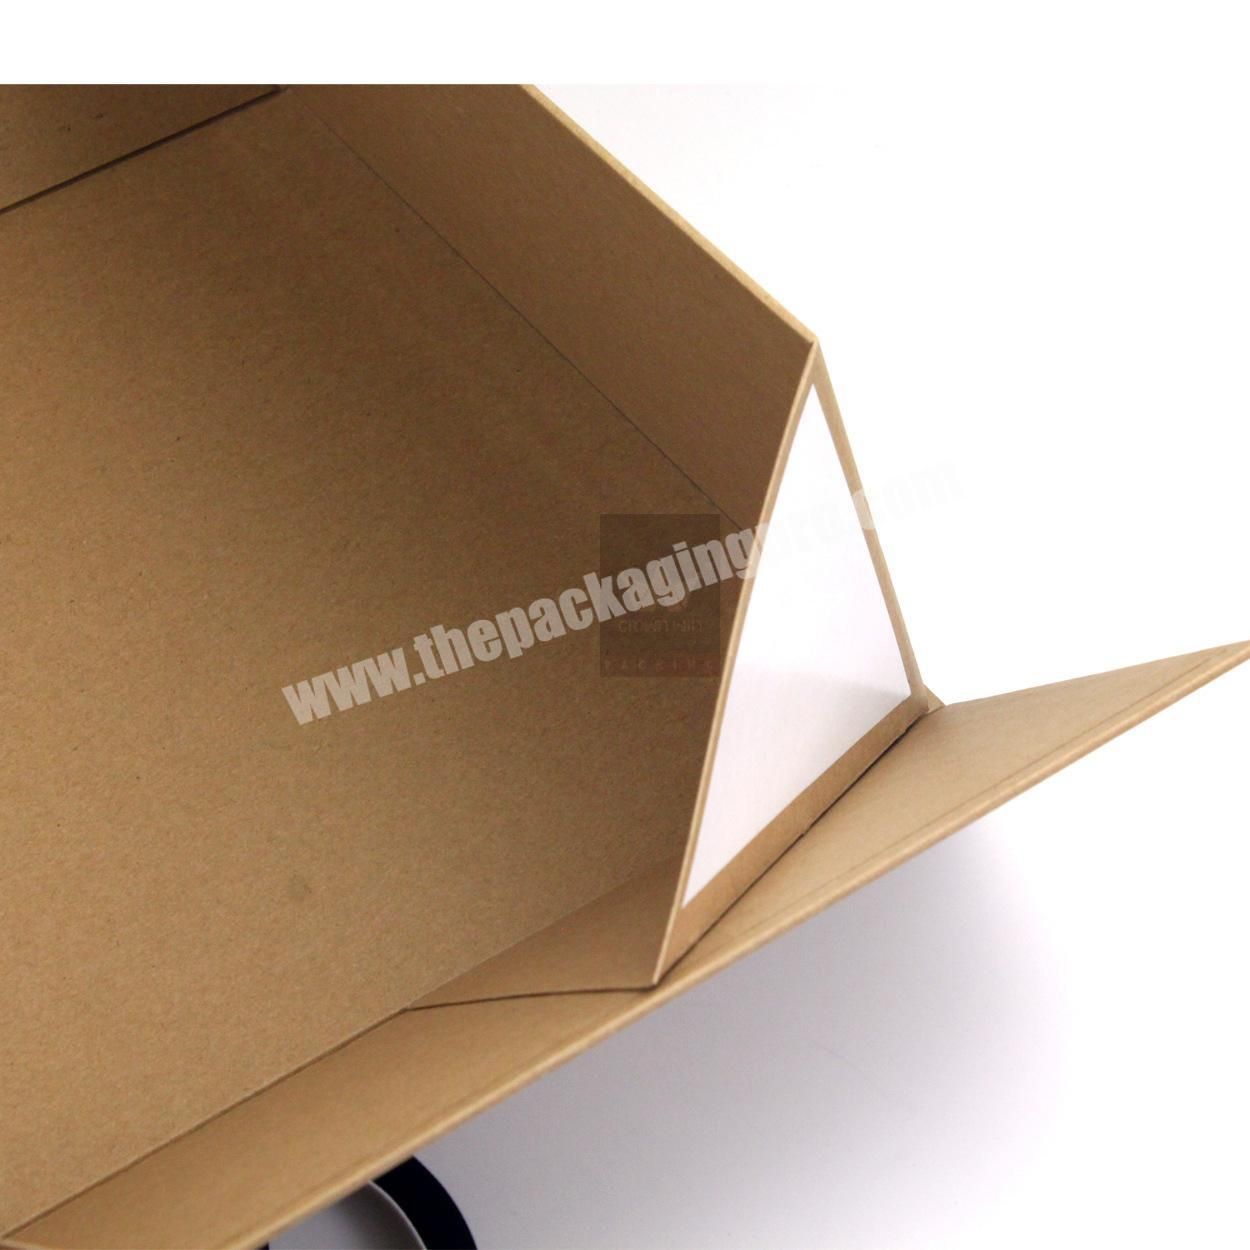 Factory China Supplier Specialty Corrugated Paper Luxury Flat Pack Boxes Hat Clothes Logo Packing Gift Box